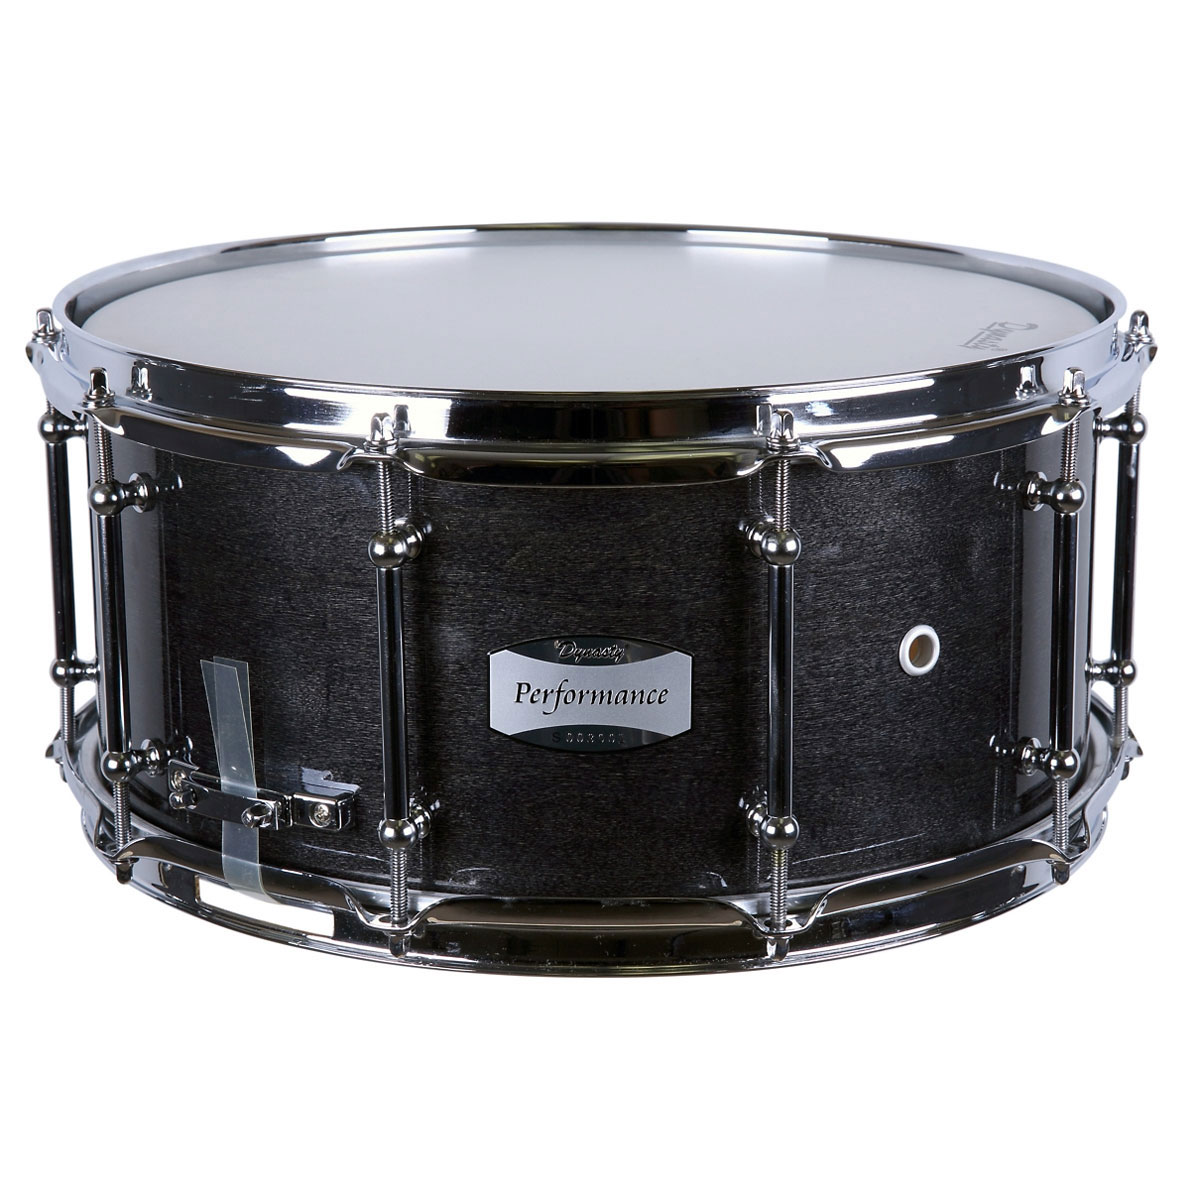 "Dynasty 14"" x 6.5"" Performance Maple Concert Snare Drum"